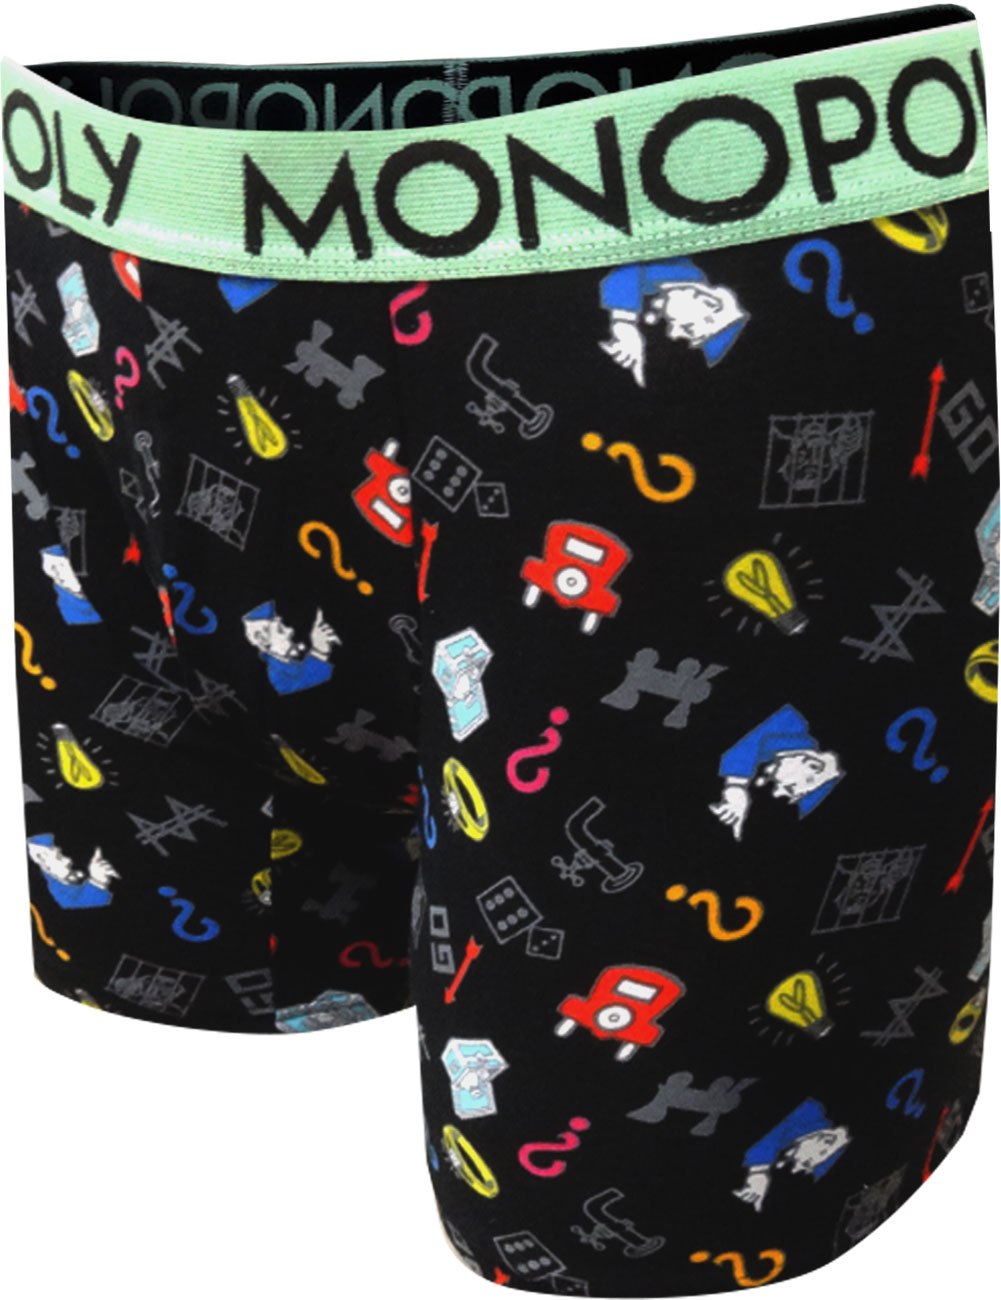 Image of Monopoly Classic Icons Boxer Briefs for men